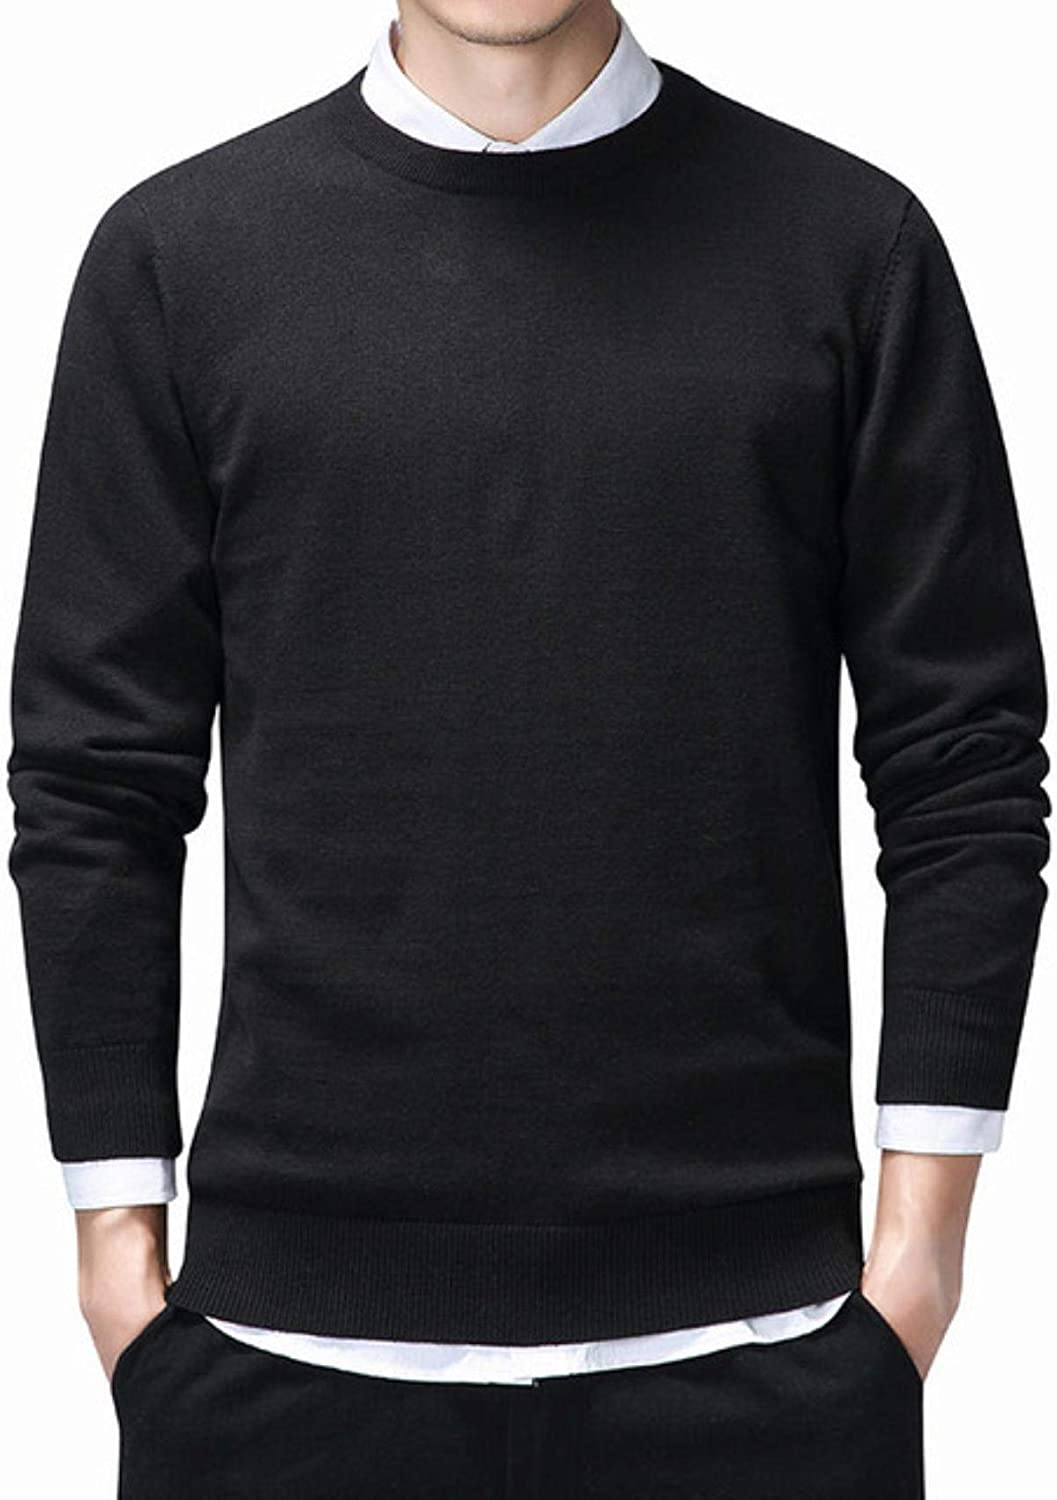 Sweater Men Casual O-Neck Knitwear Pull 100% Cotton Pullover Winter